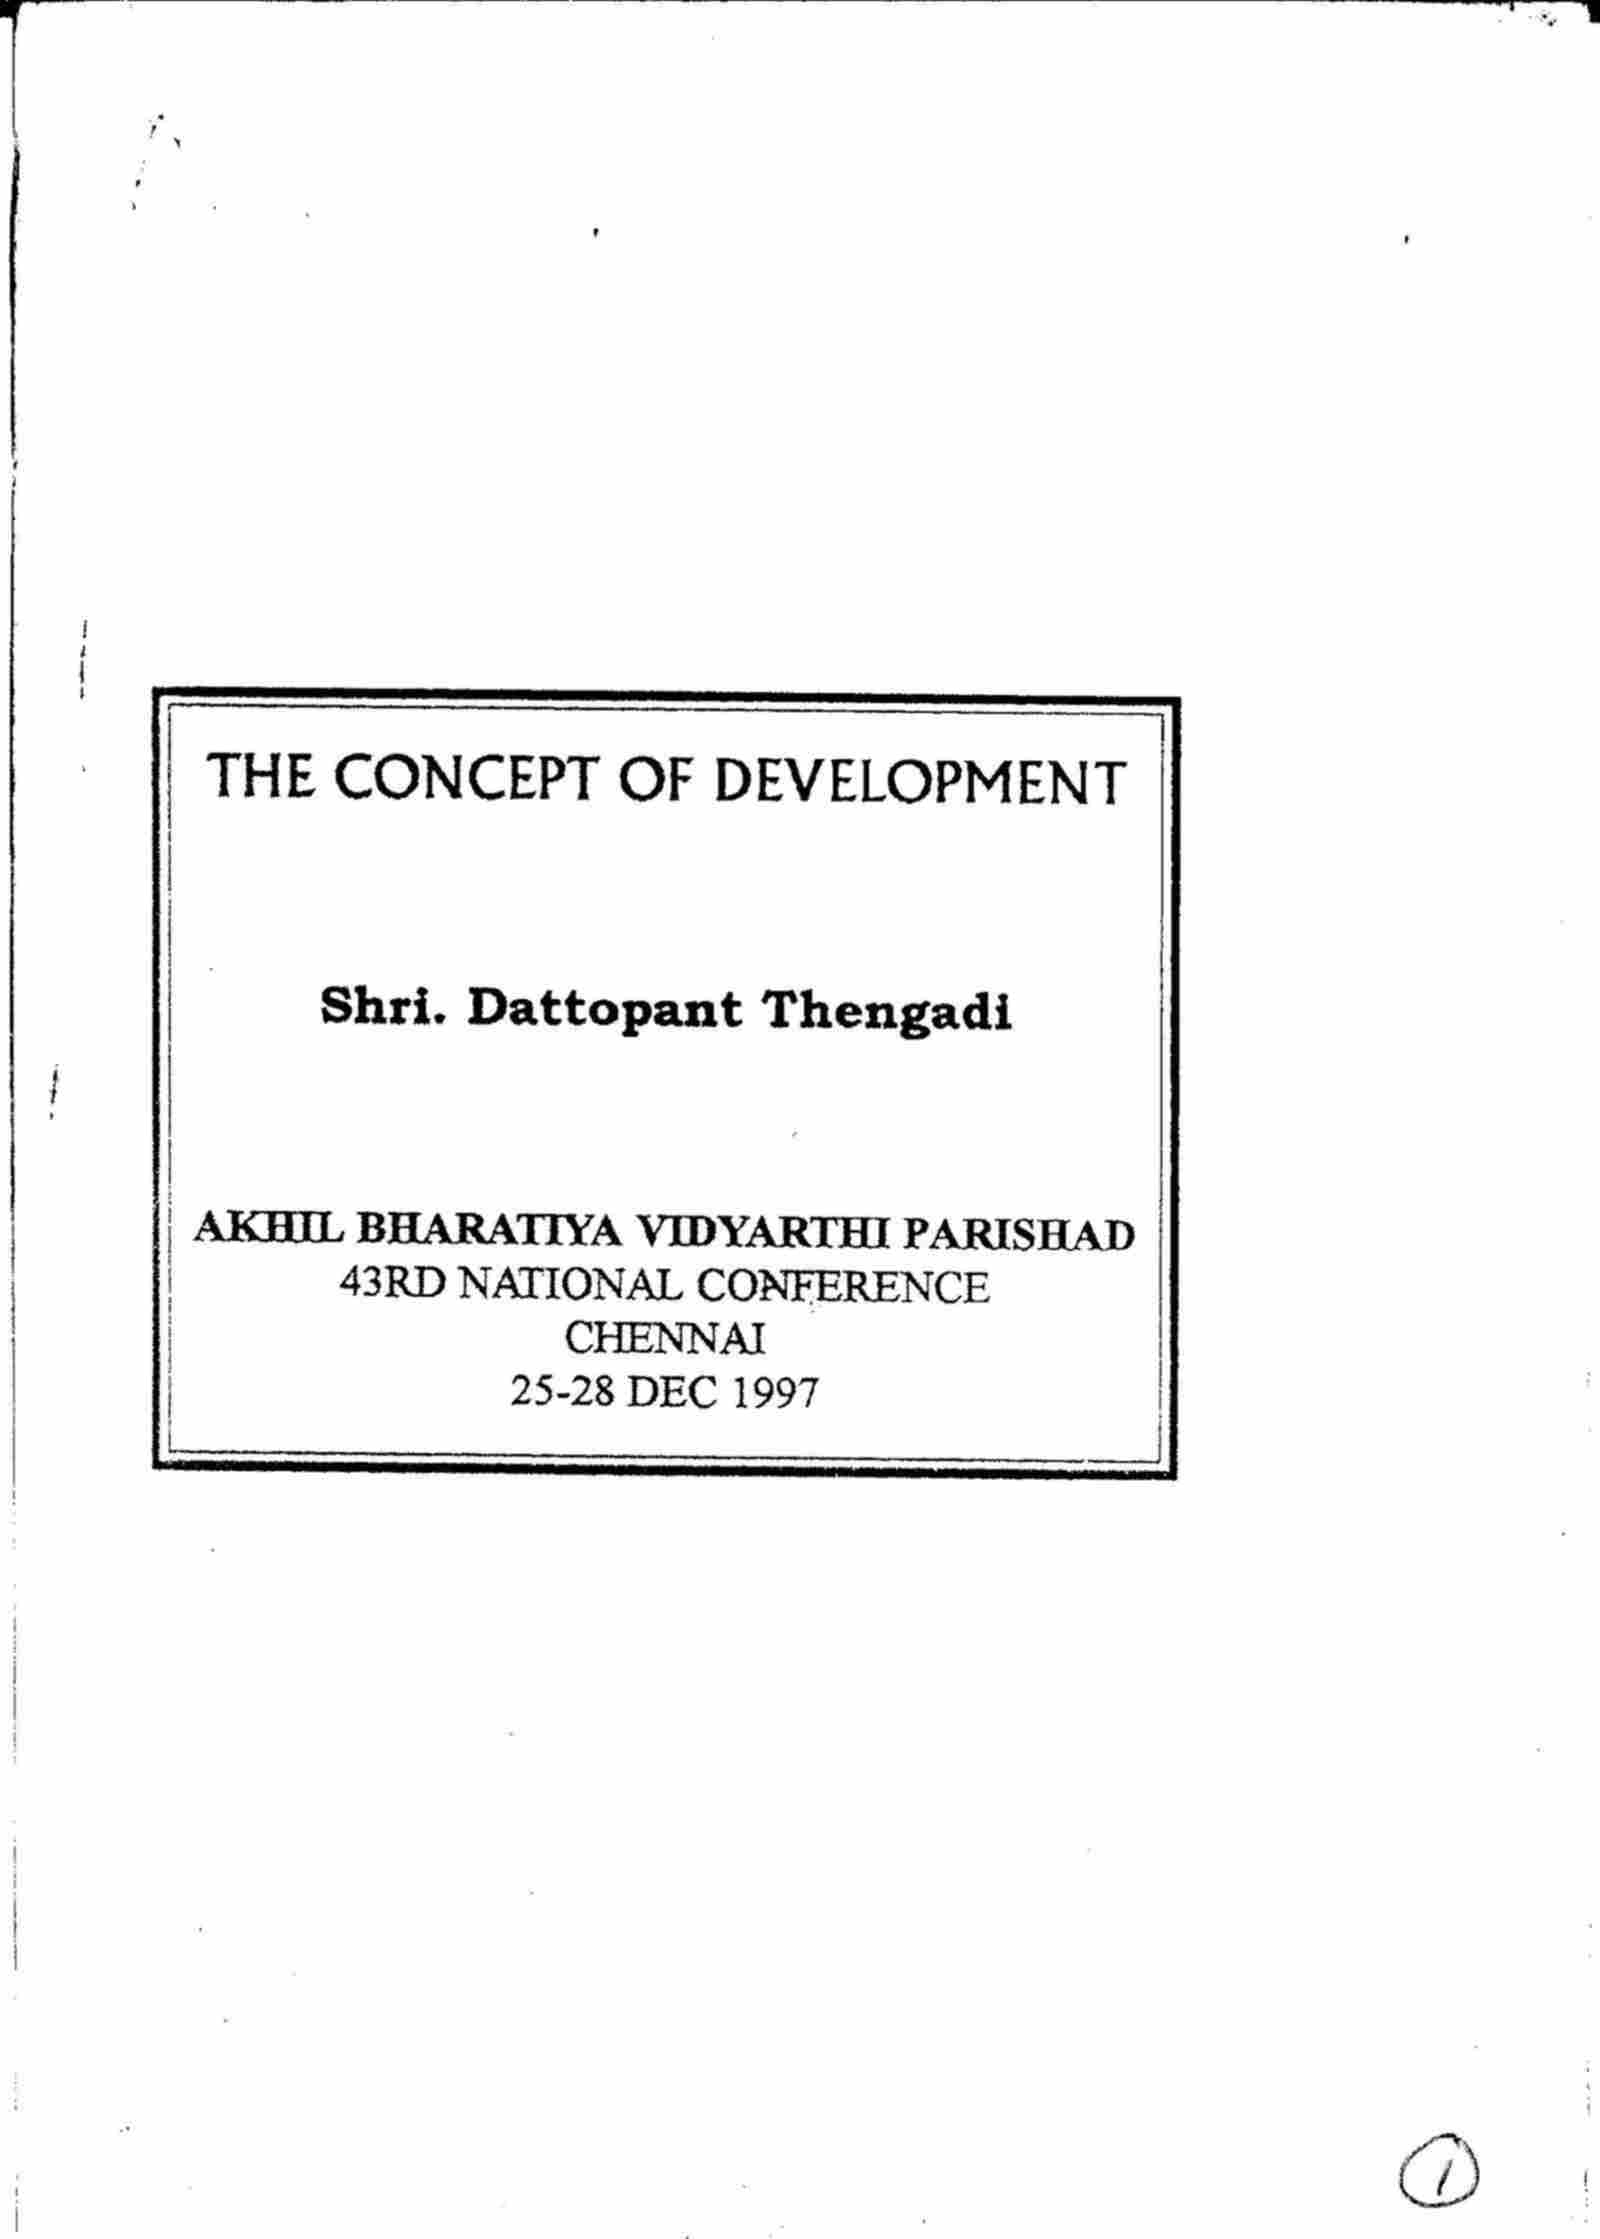 The Concept of Development